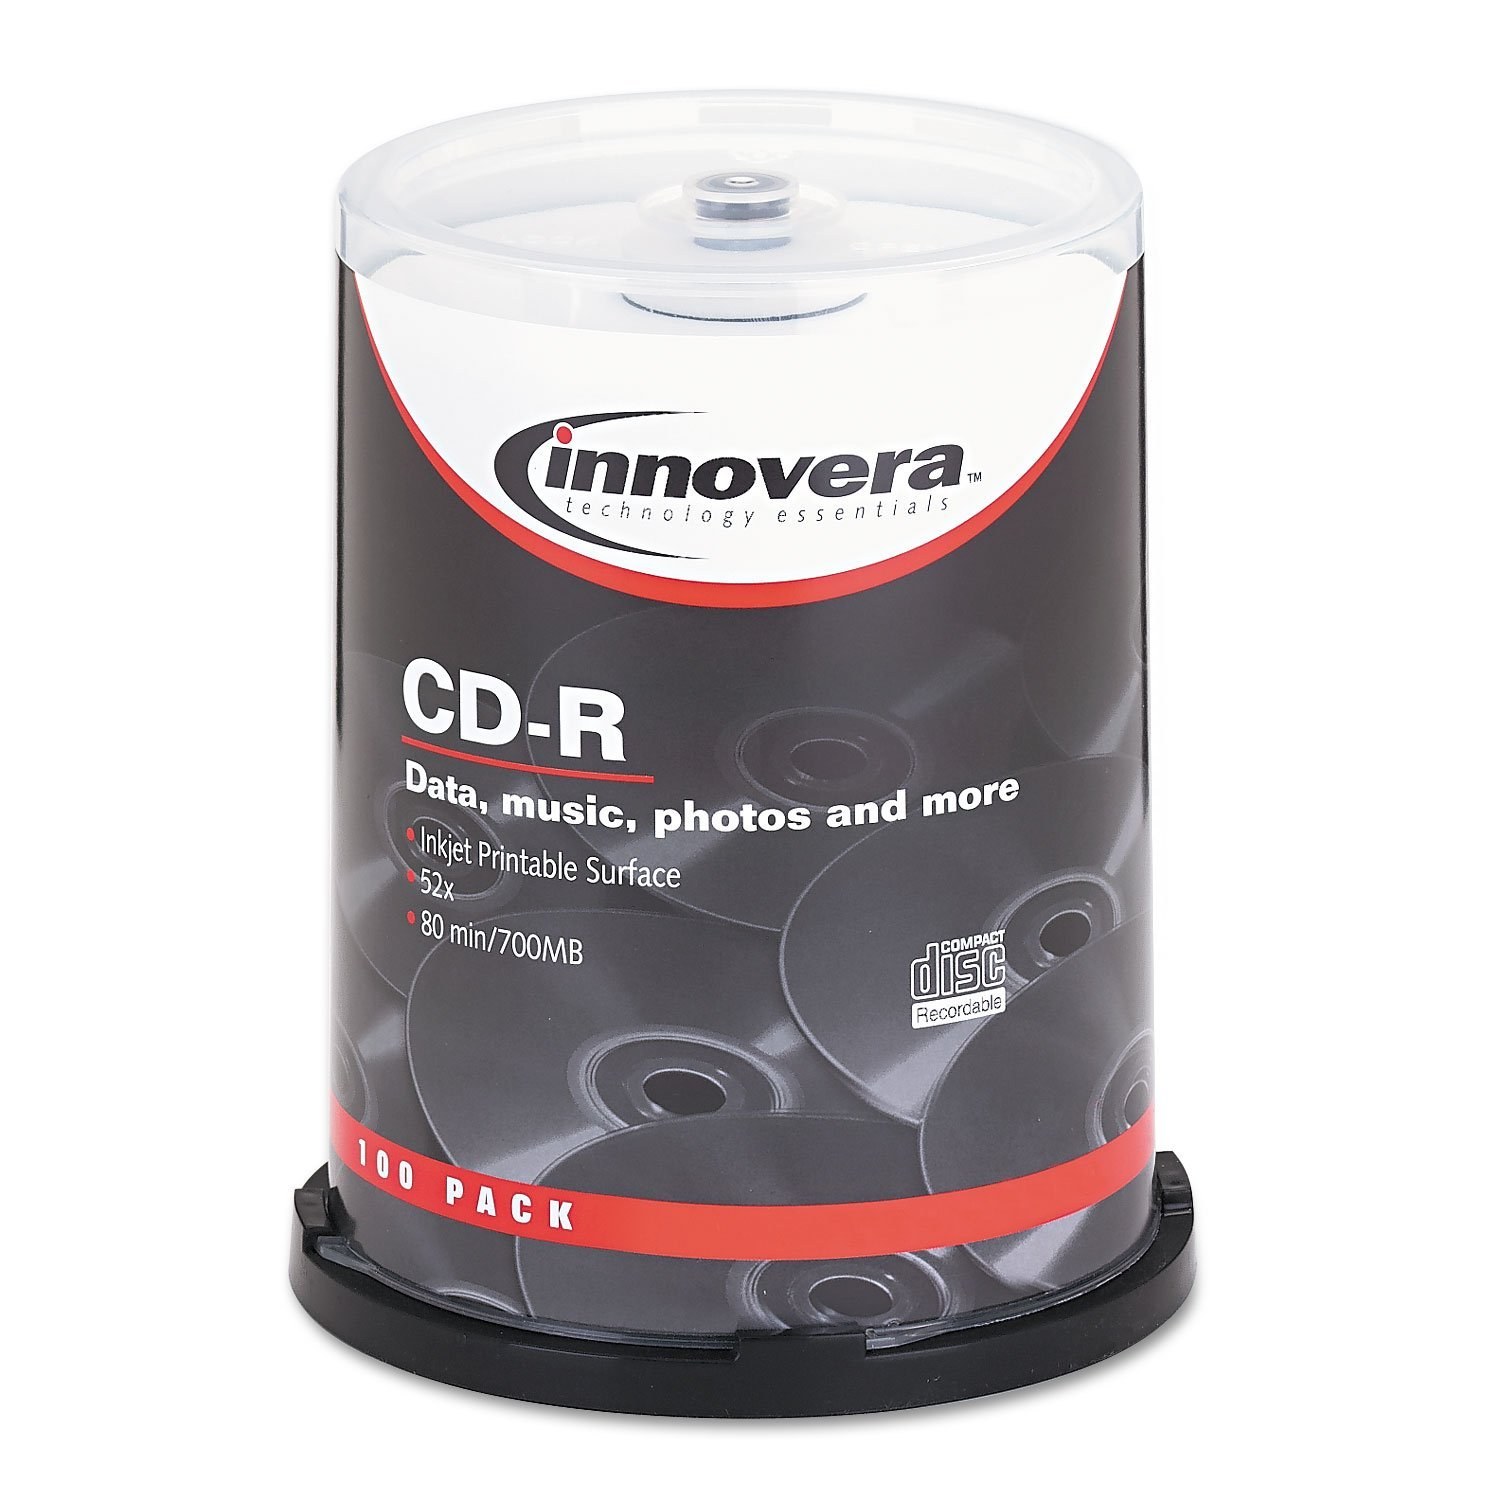 77815 CD-R Discs Hub Printable 700MB/80min 52x Spindle Matte White 100/Pack, Sold as 100/Pack. By Innovera